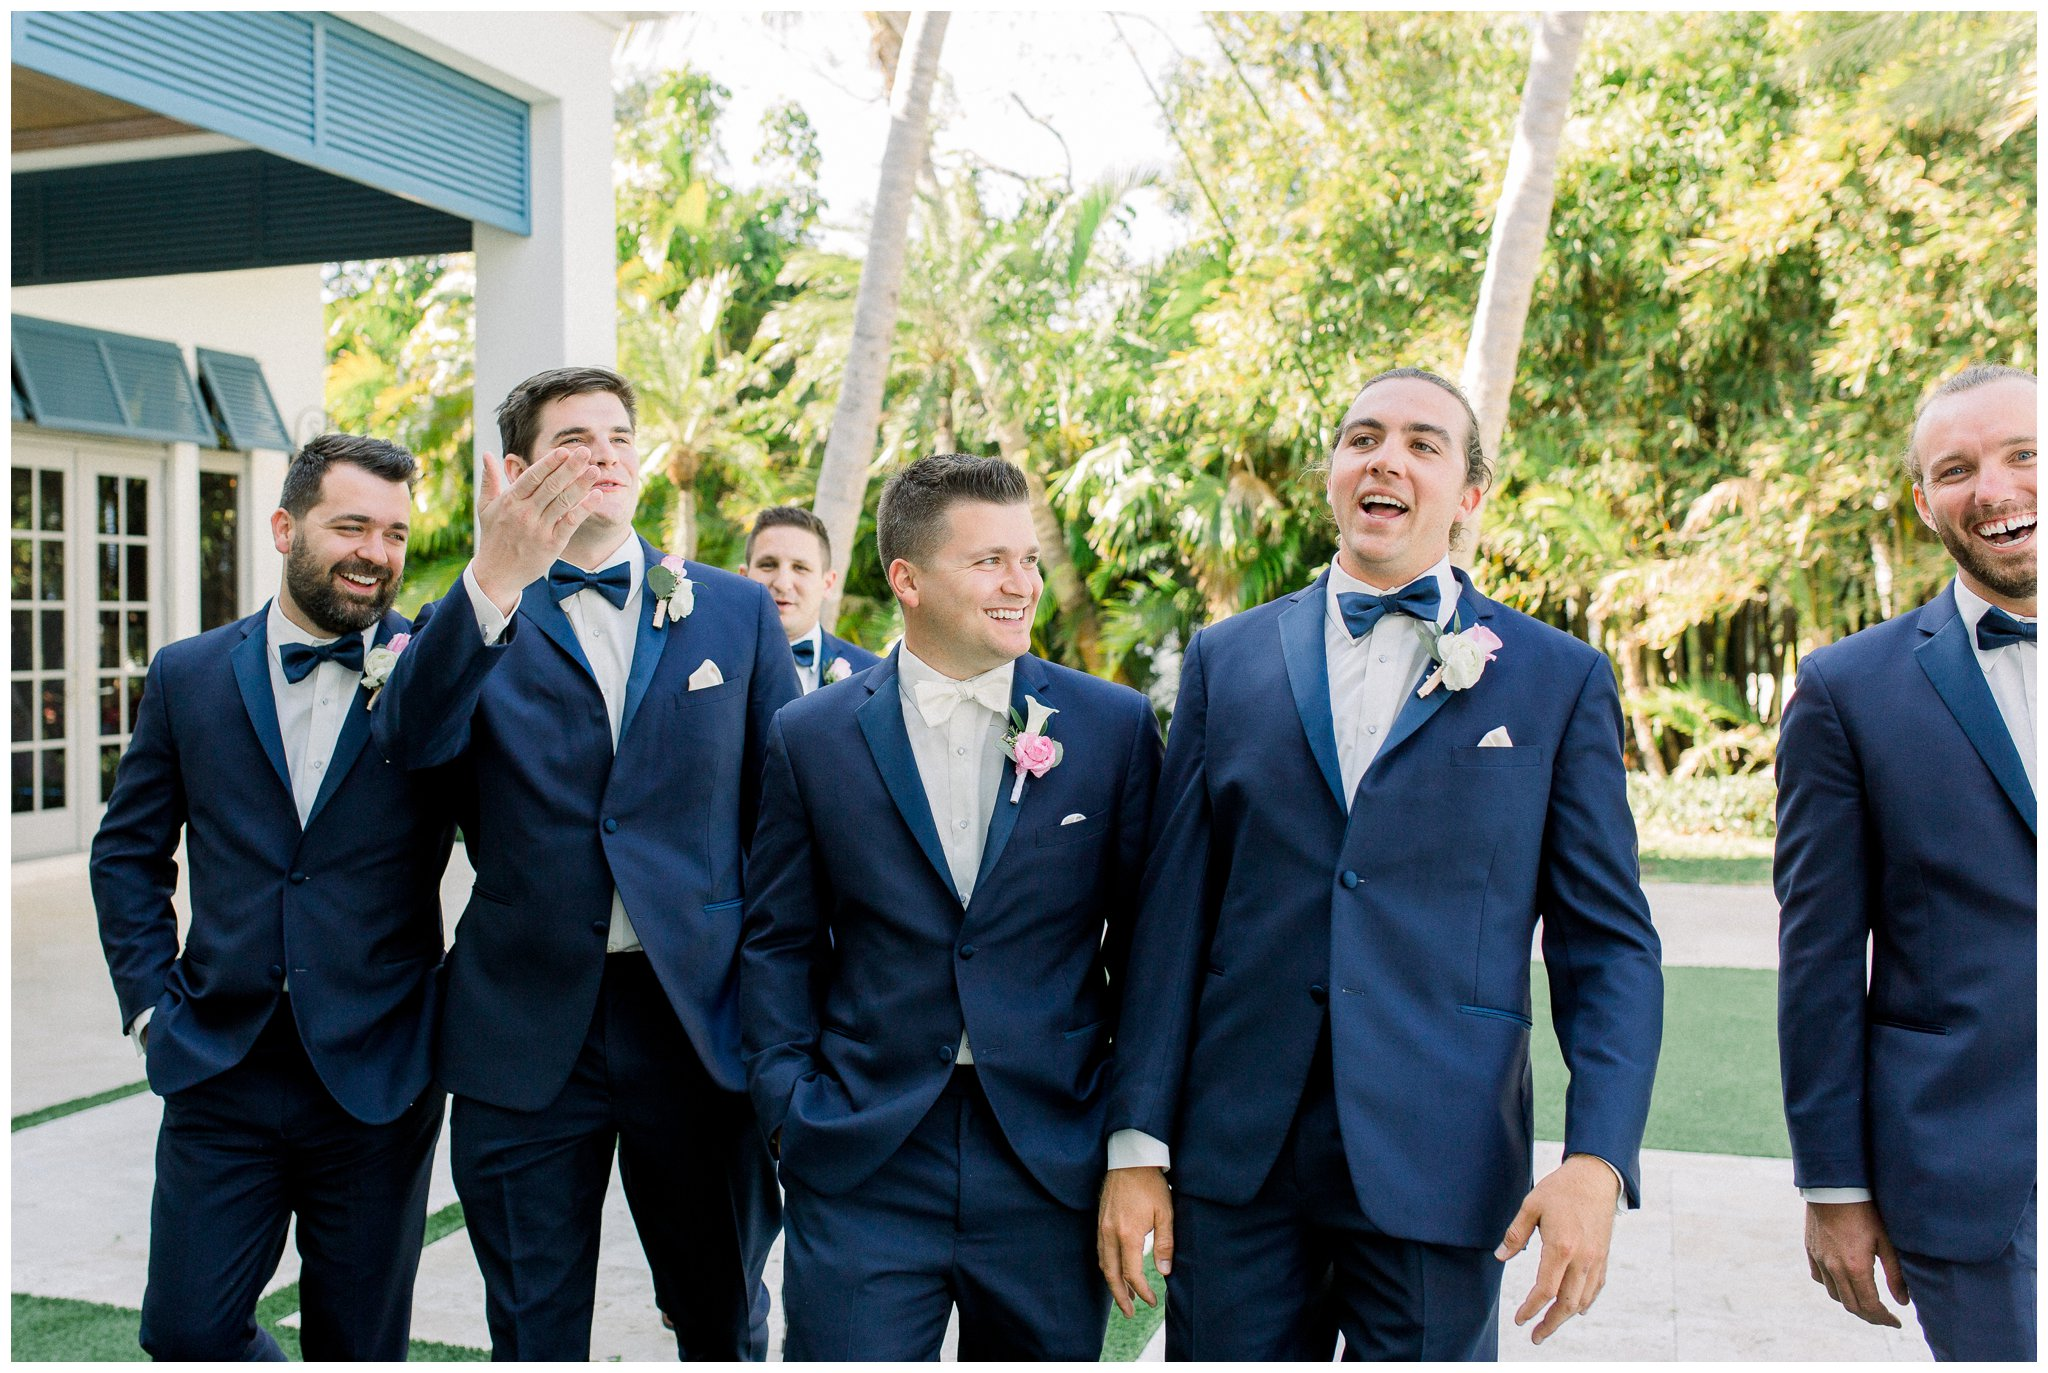 South Florida Wedding Photographer- Palm Beach Wedding Photographer- Jupiter Wedding Photographer- Florida Photographer- Willoughby Country Club Wedding- Sturat Florida Wedding- St Bernadette Port St Lucie Wedding_0022.jpg